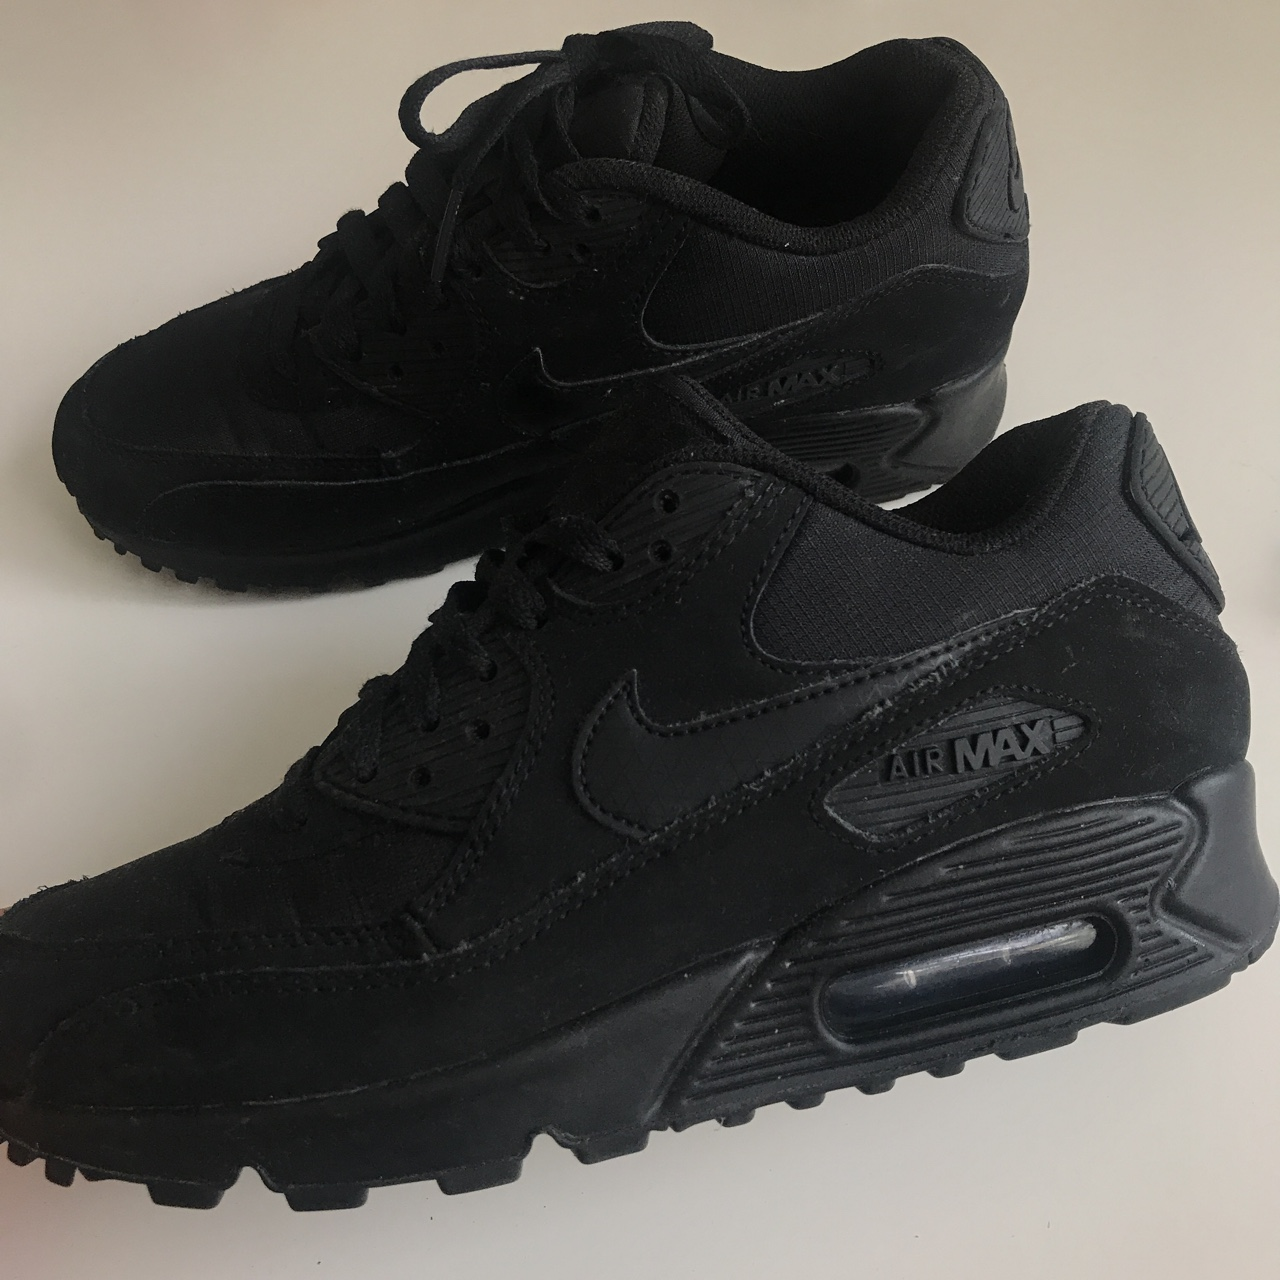 Black Nike Air Max 90 essential suede triple black. Depop